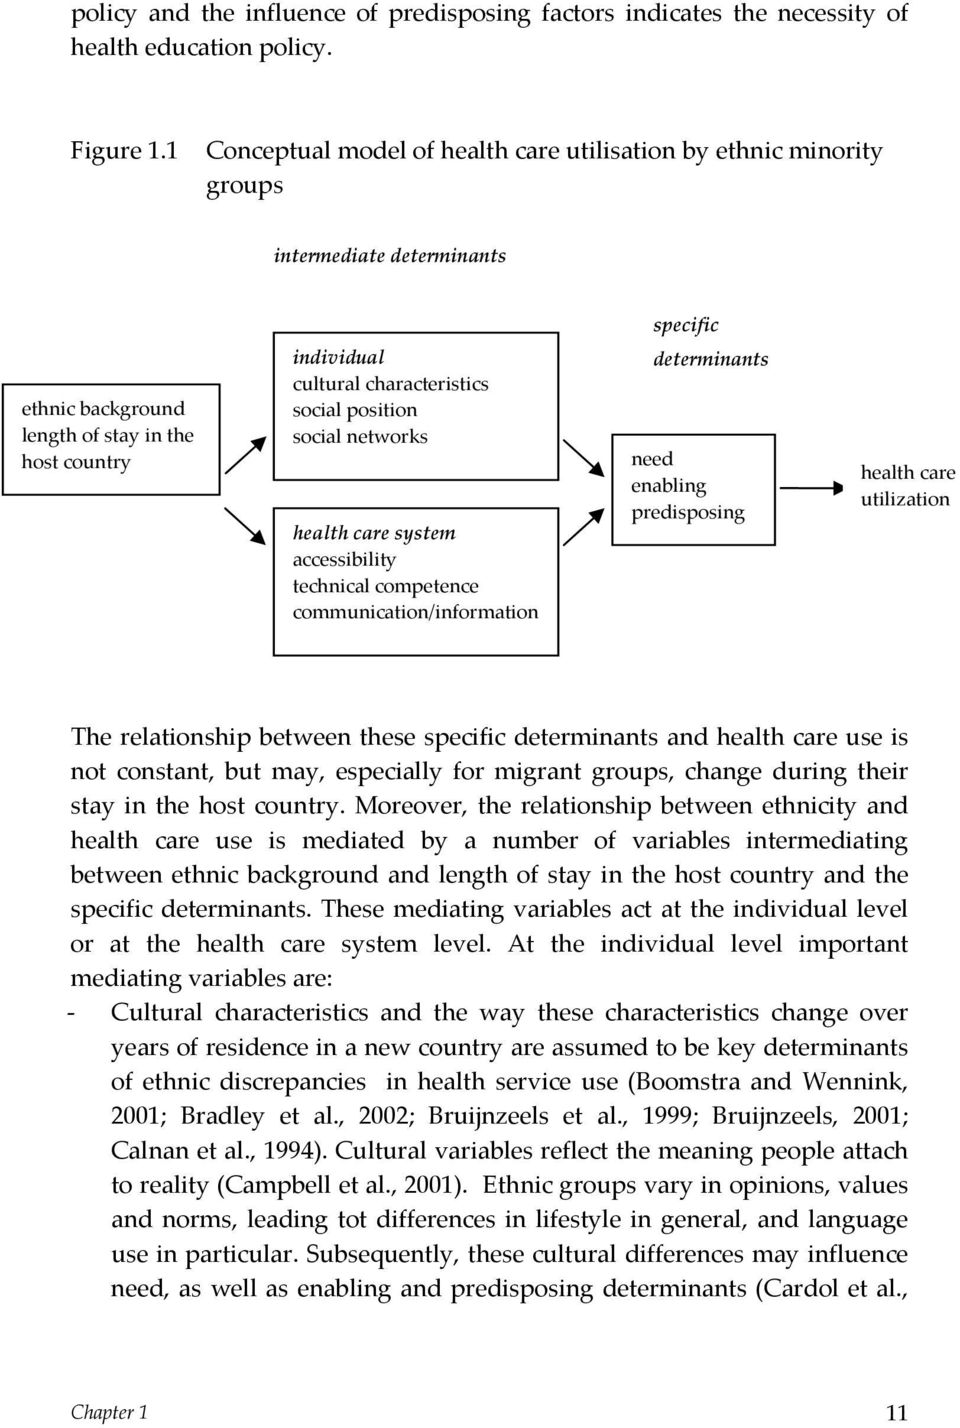 social position social networks health care system accessibility technical competence communication/information determinants need enabling predisposing health care utilization The relationship